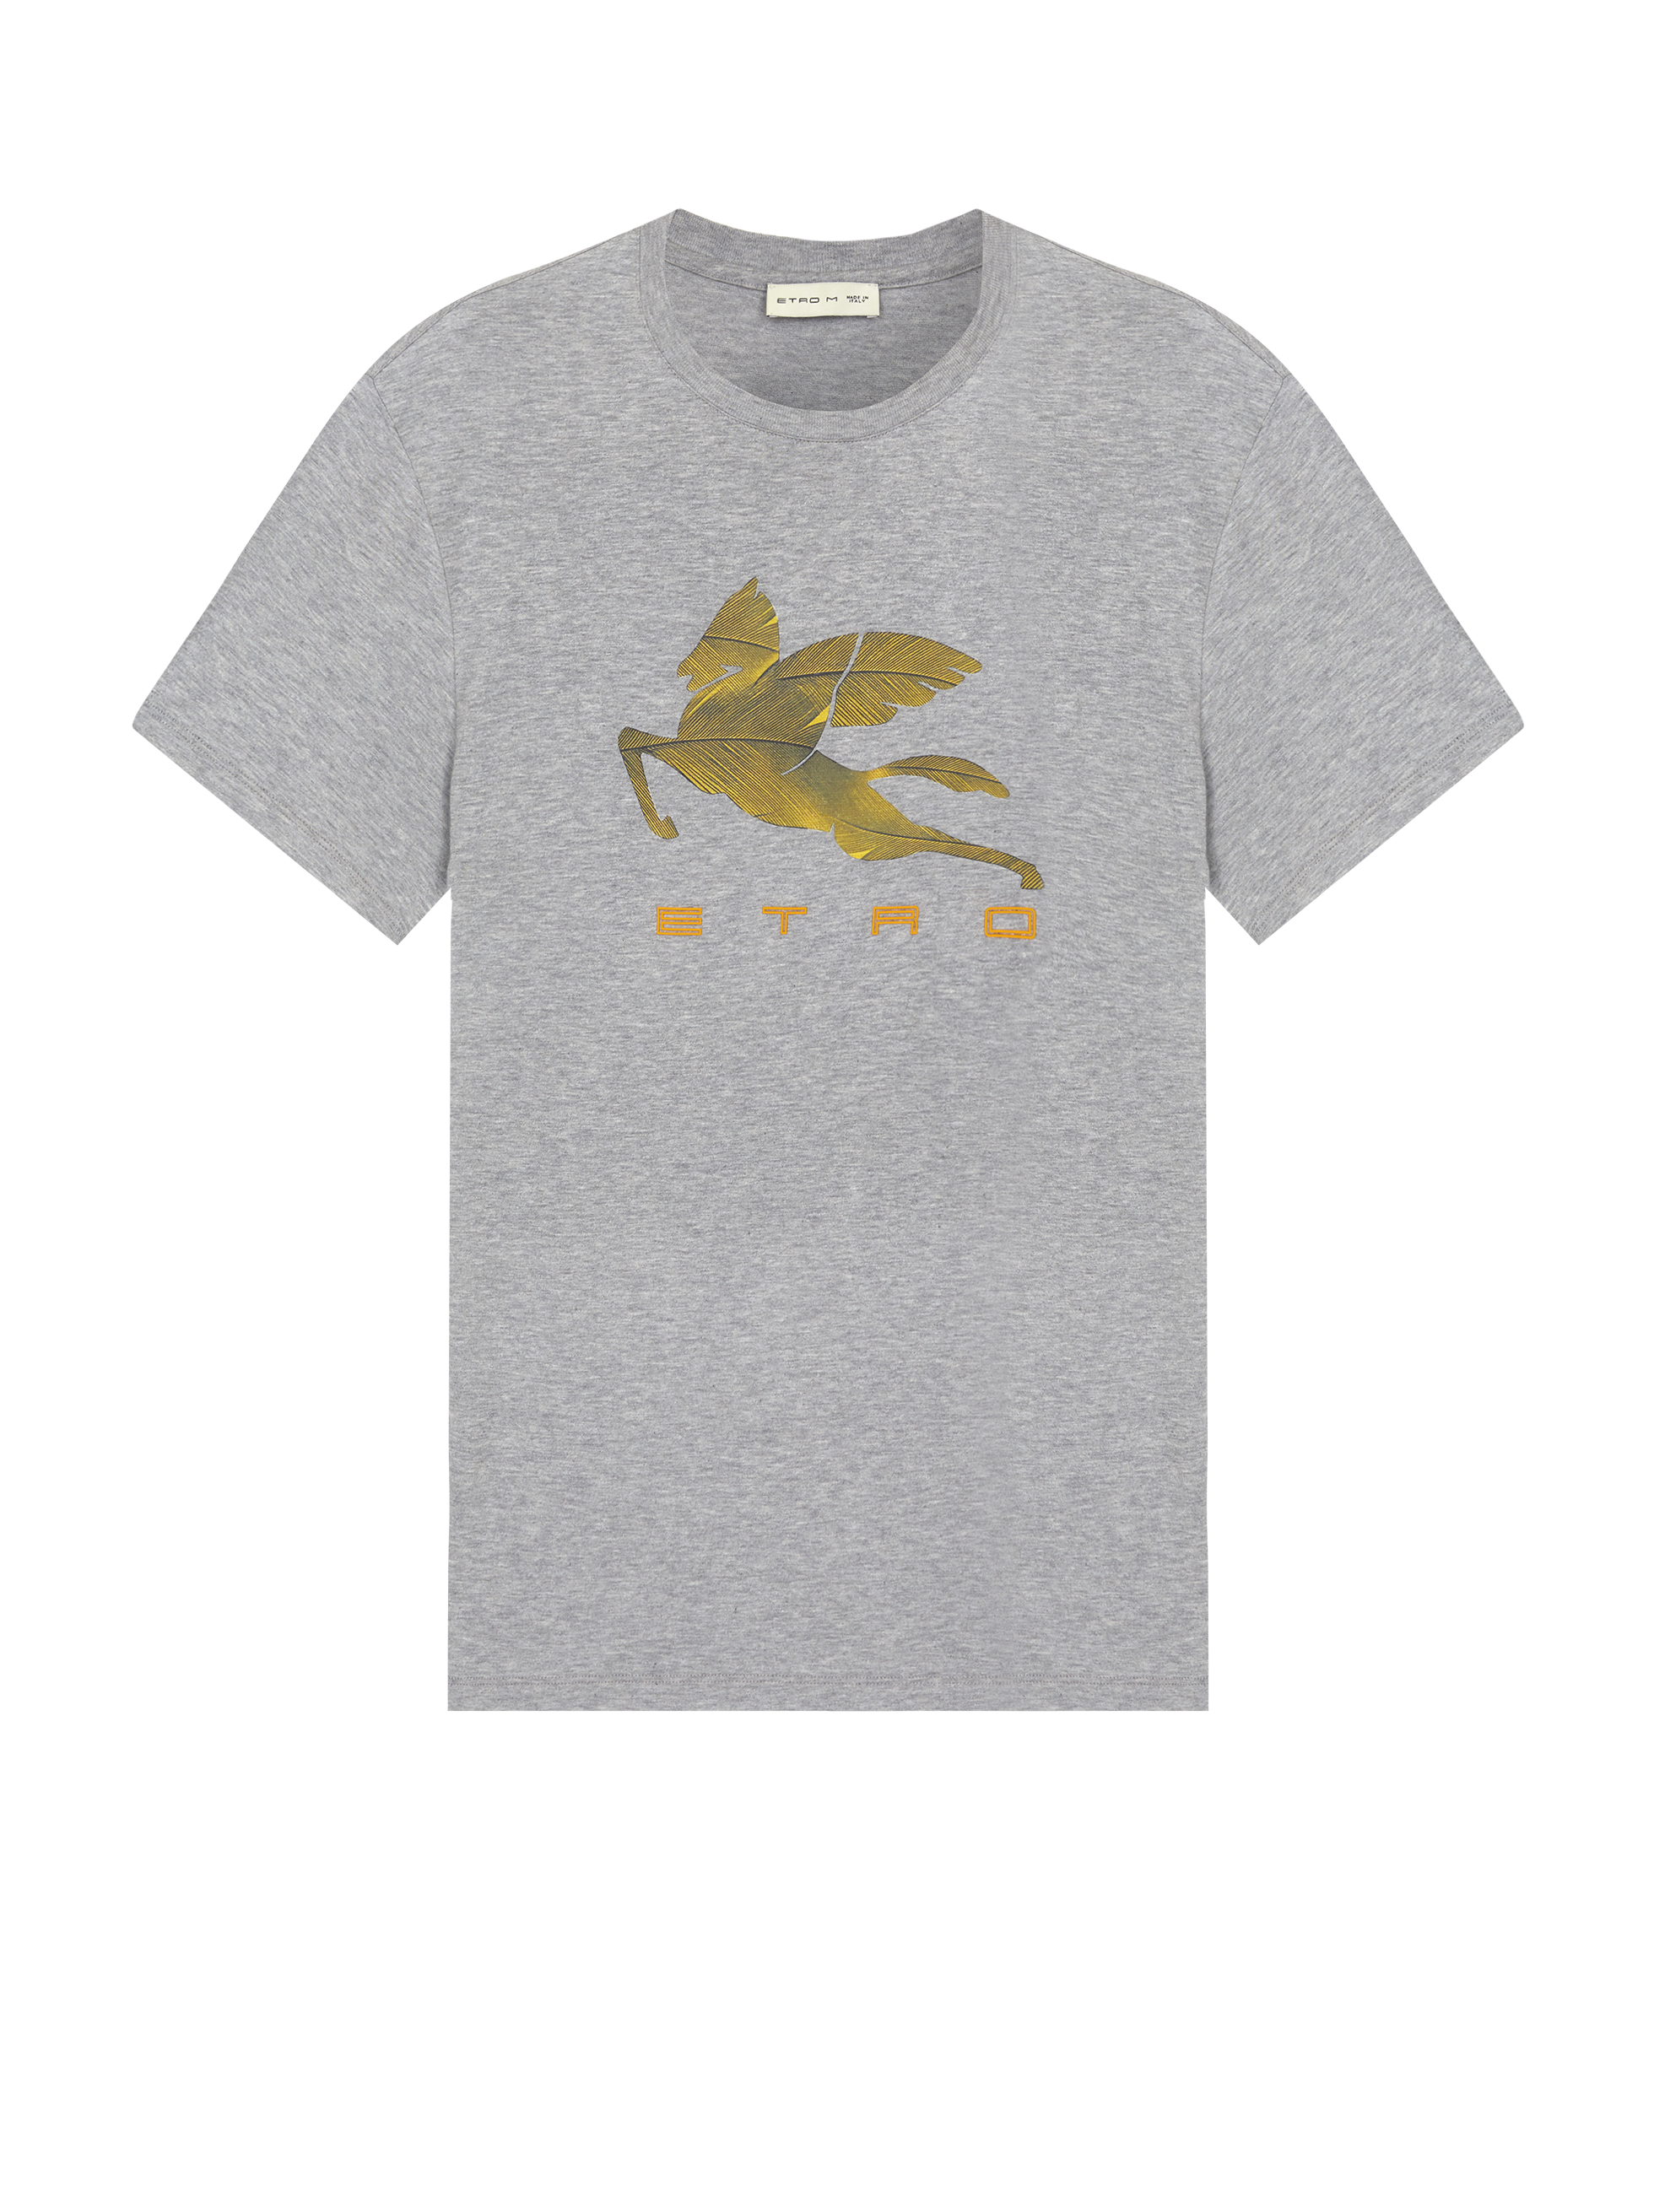 T-SHIRT WITH PEGASO PRINT